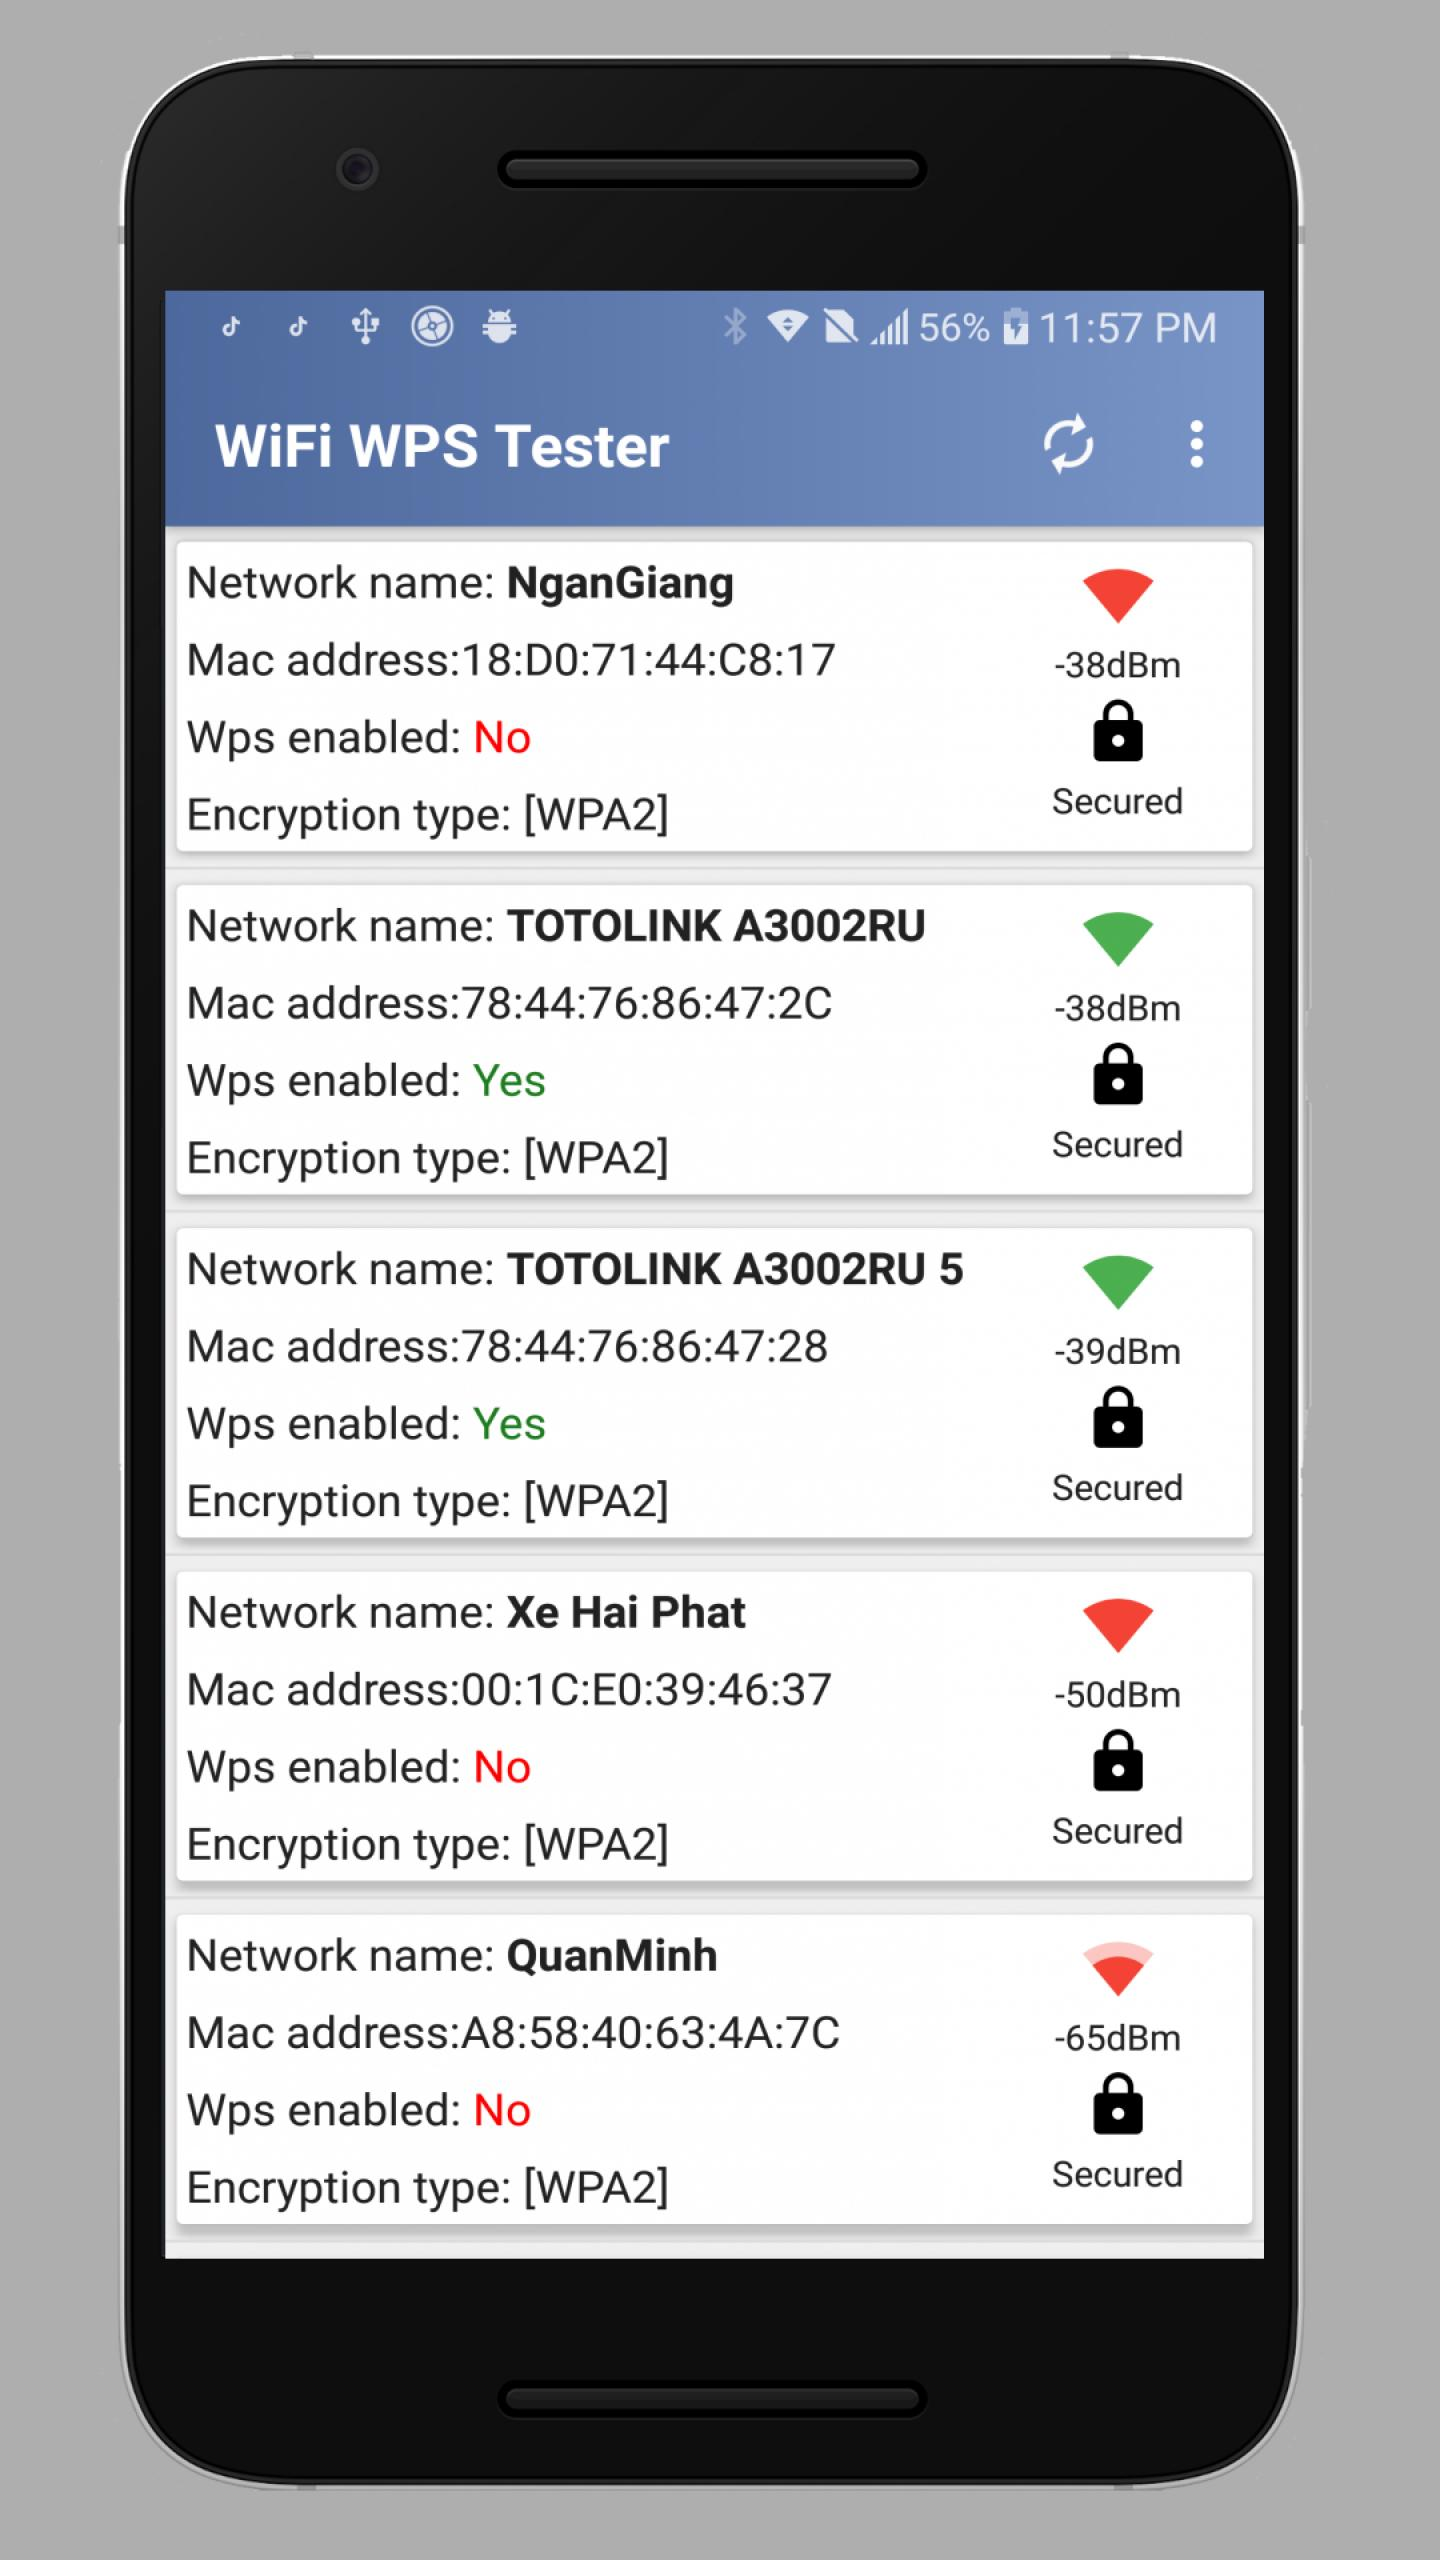 WPS WPA Tester — WiFi WPS Connect, Recovery for Android - APK Download